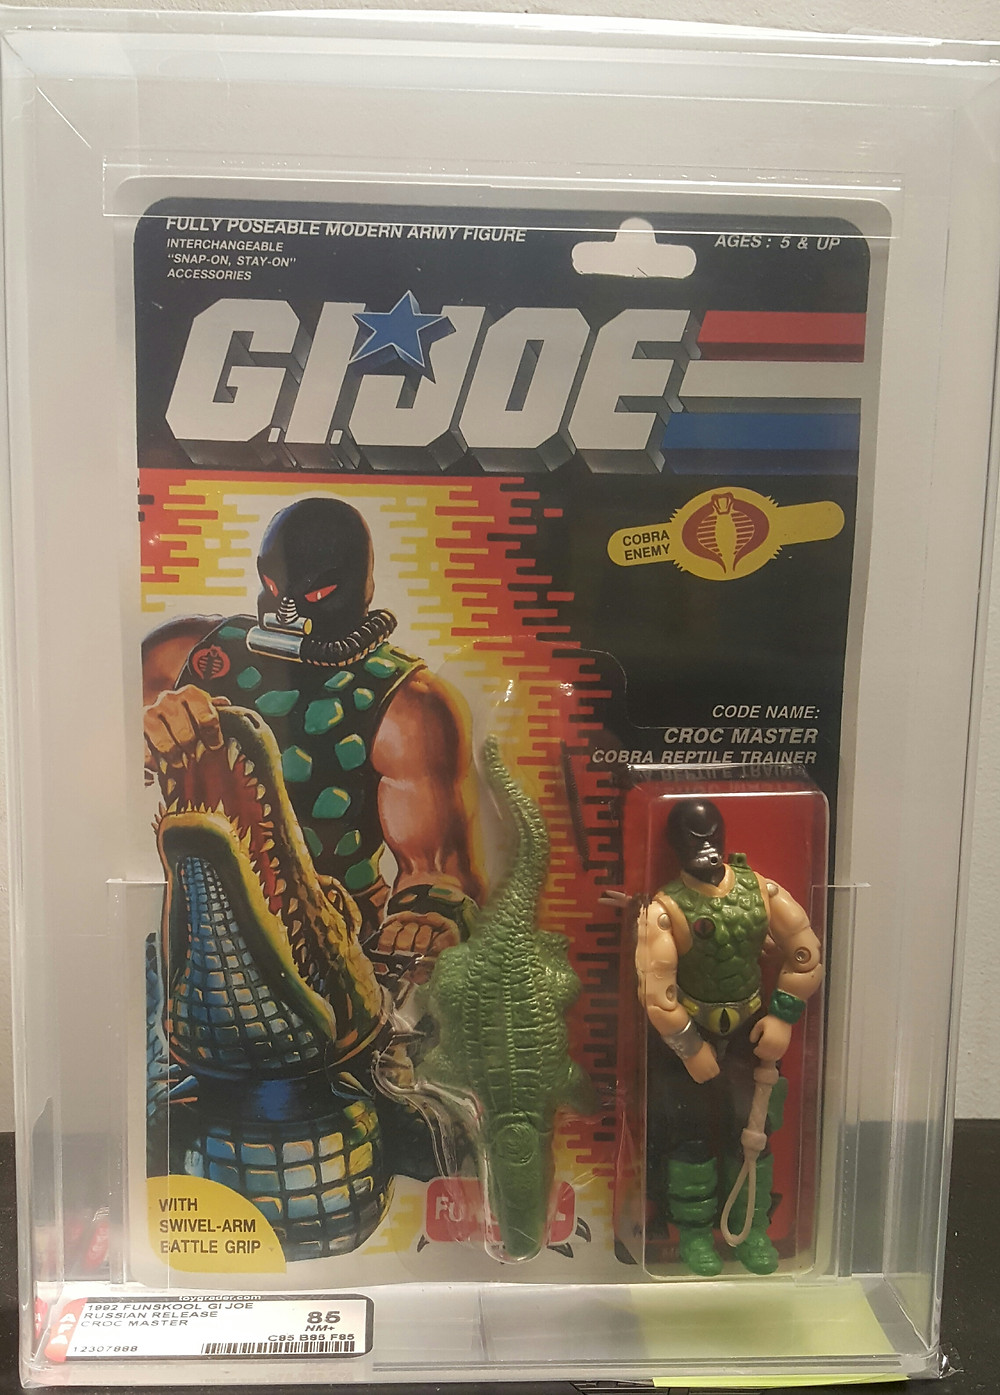 Mint Action Figures and toys Http://www.valleygoto.com